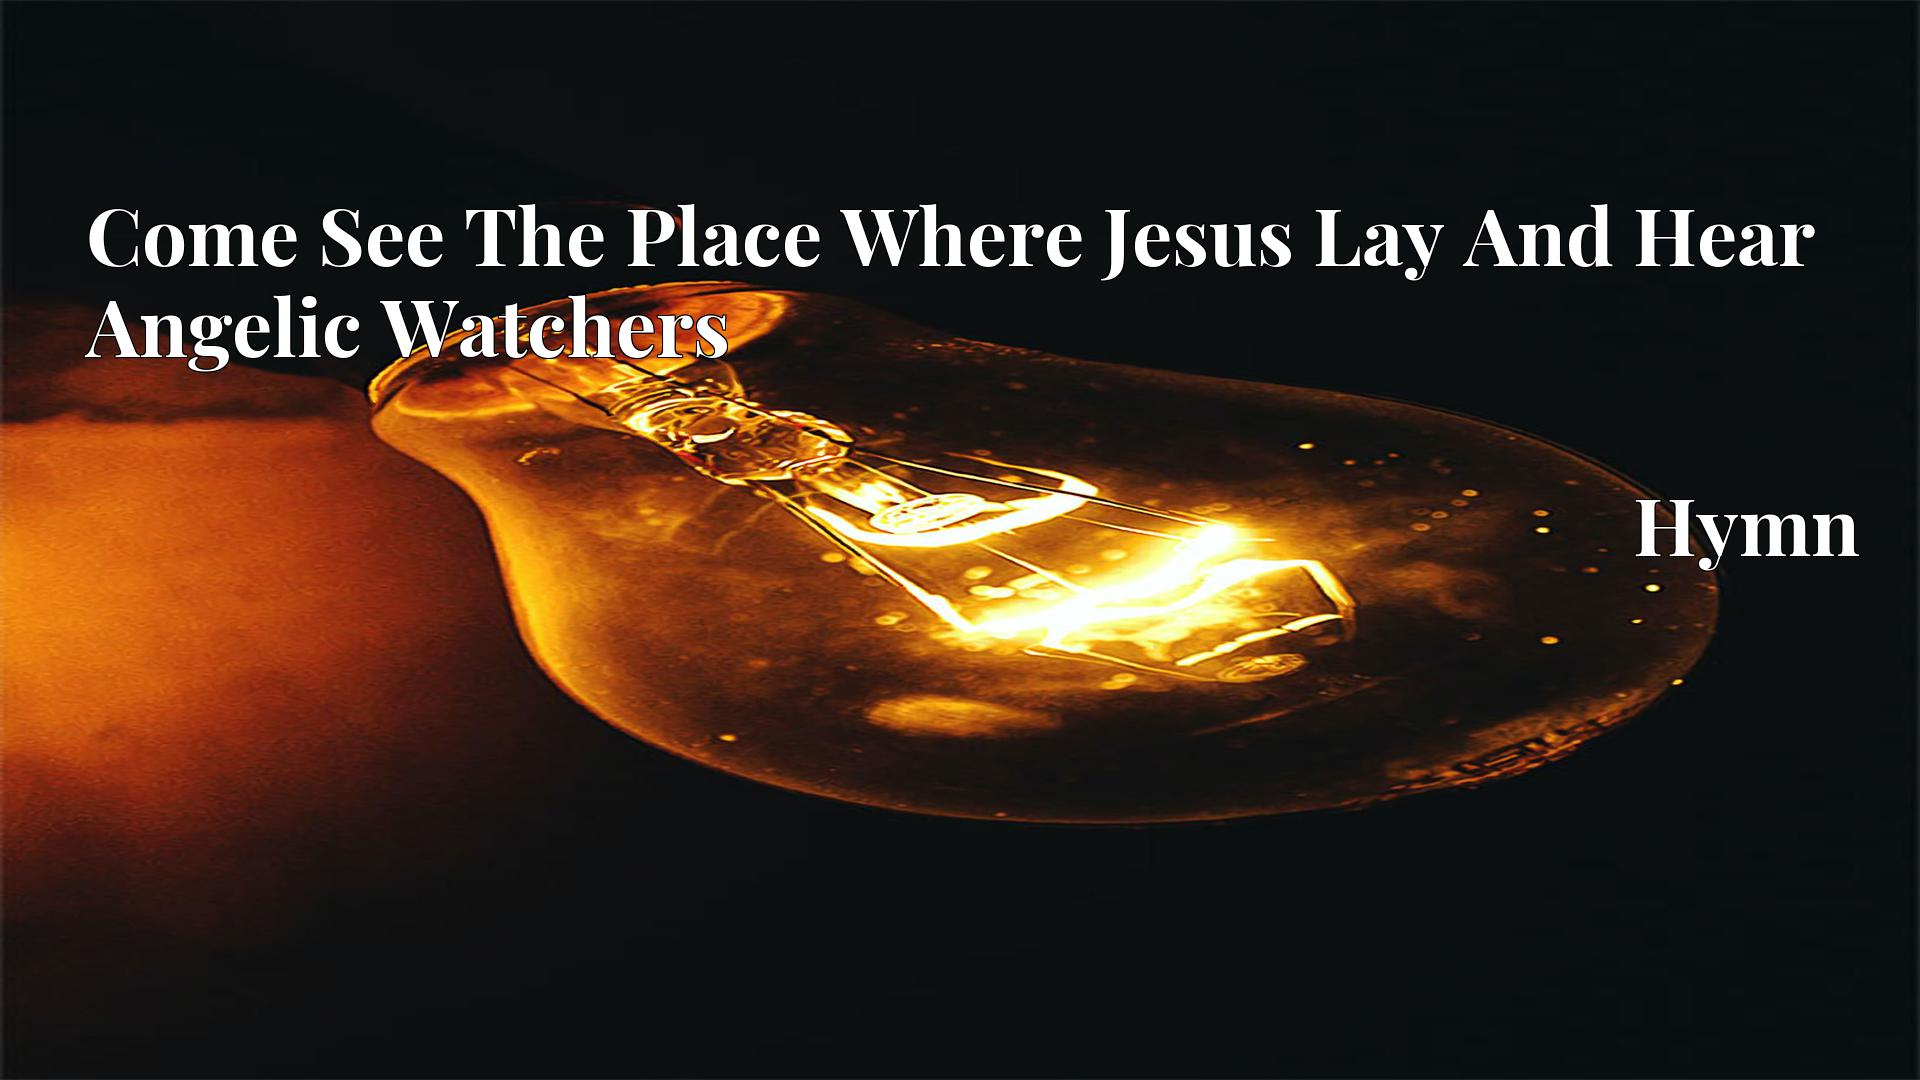 Come See The Place Where Jesus Lay And Hear Angelic Watchers - Hymn